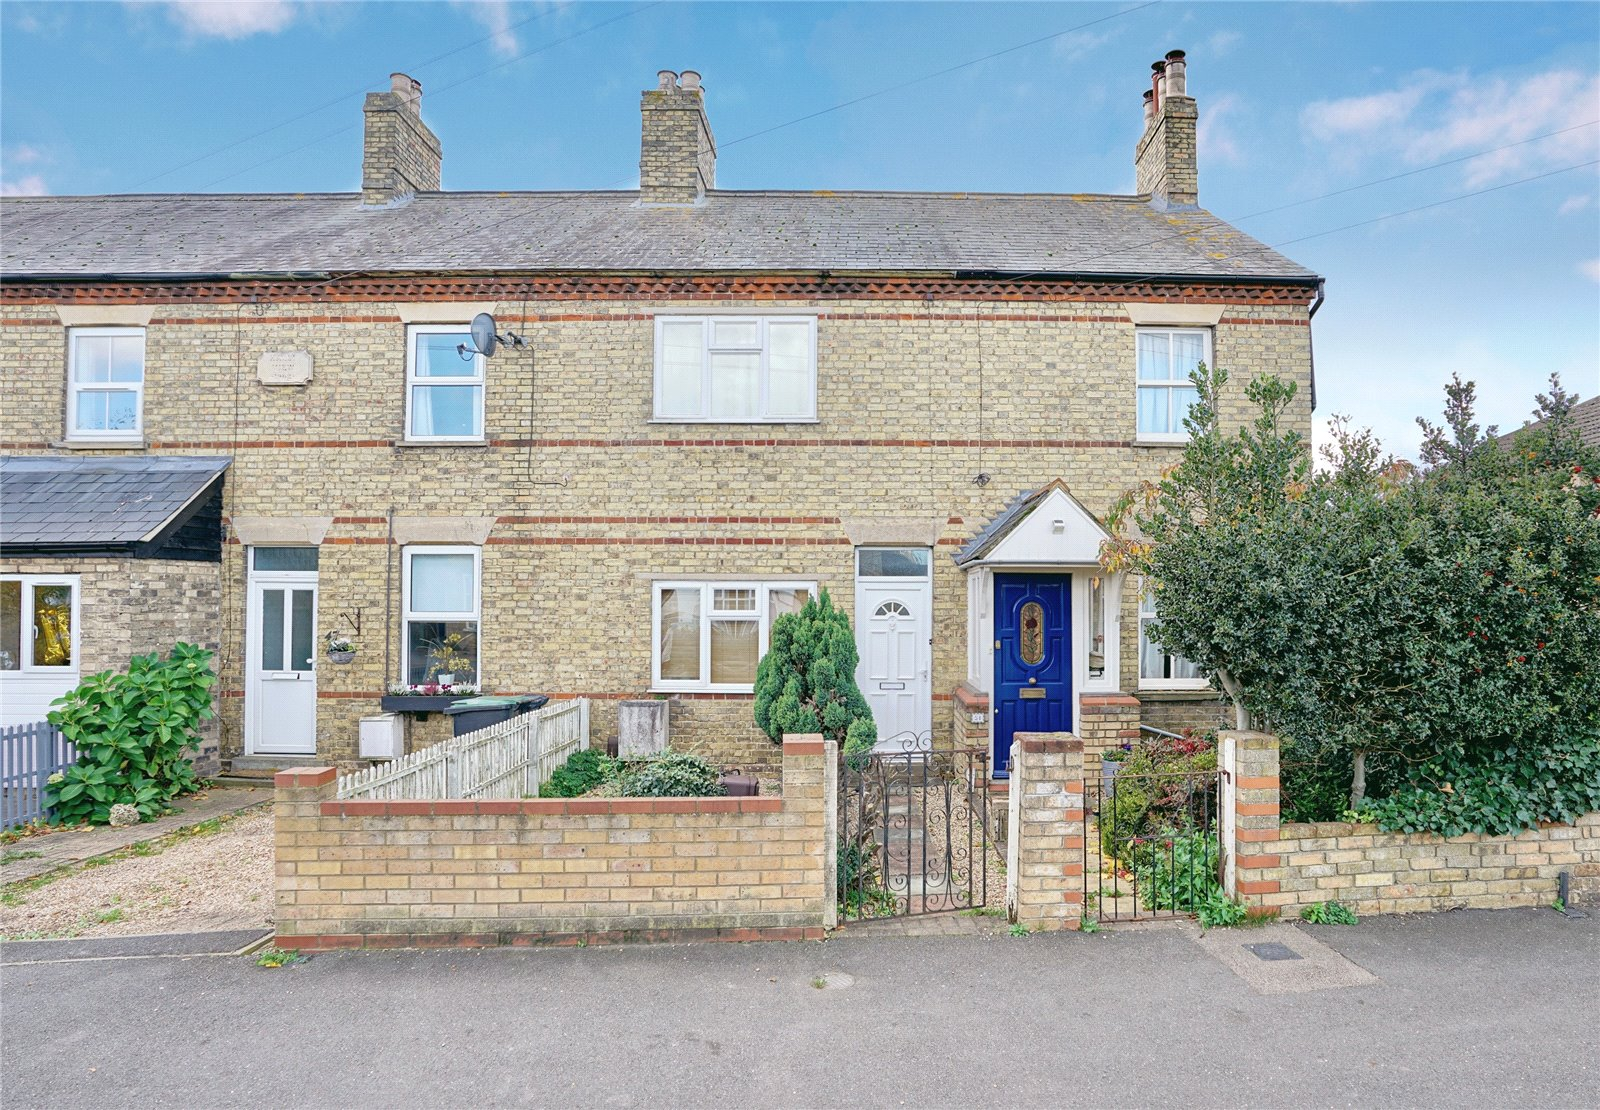 2 bed house for sale in Sandy, St Neots Road, SG19 1LE, SG19